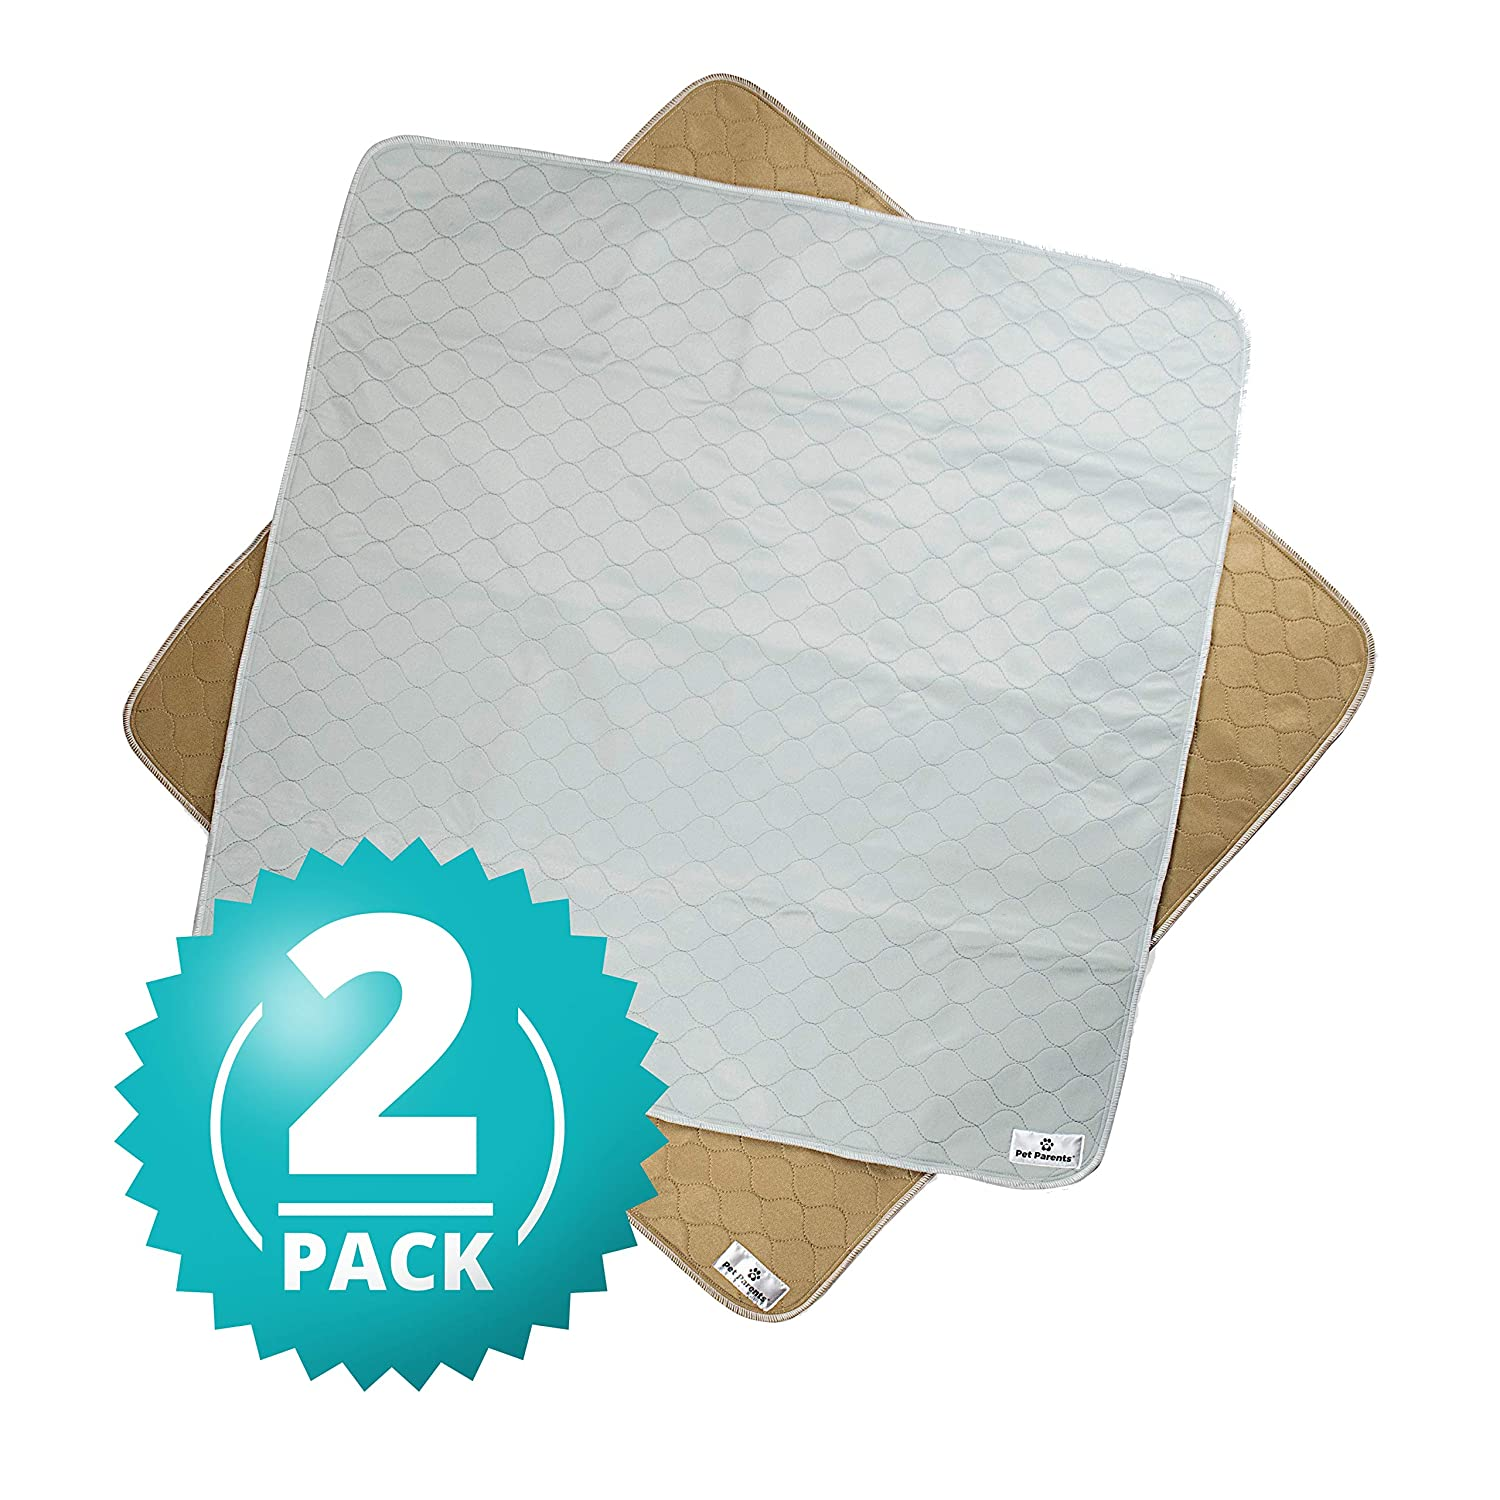 Natural 41x41 (2pack) Natural 41x41 (2pack) Pet Parents Washable Dog Pee Pads (2pack) of (41x41) Premium Pee Pads for Dogs, Waterproof Whelping Pads, Reusable Dog Training Pads, Quality Travel Pet Pee Pads. Modern Puppy Pads  (1 Tan & 1 Grey)